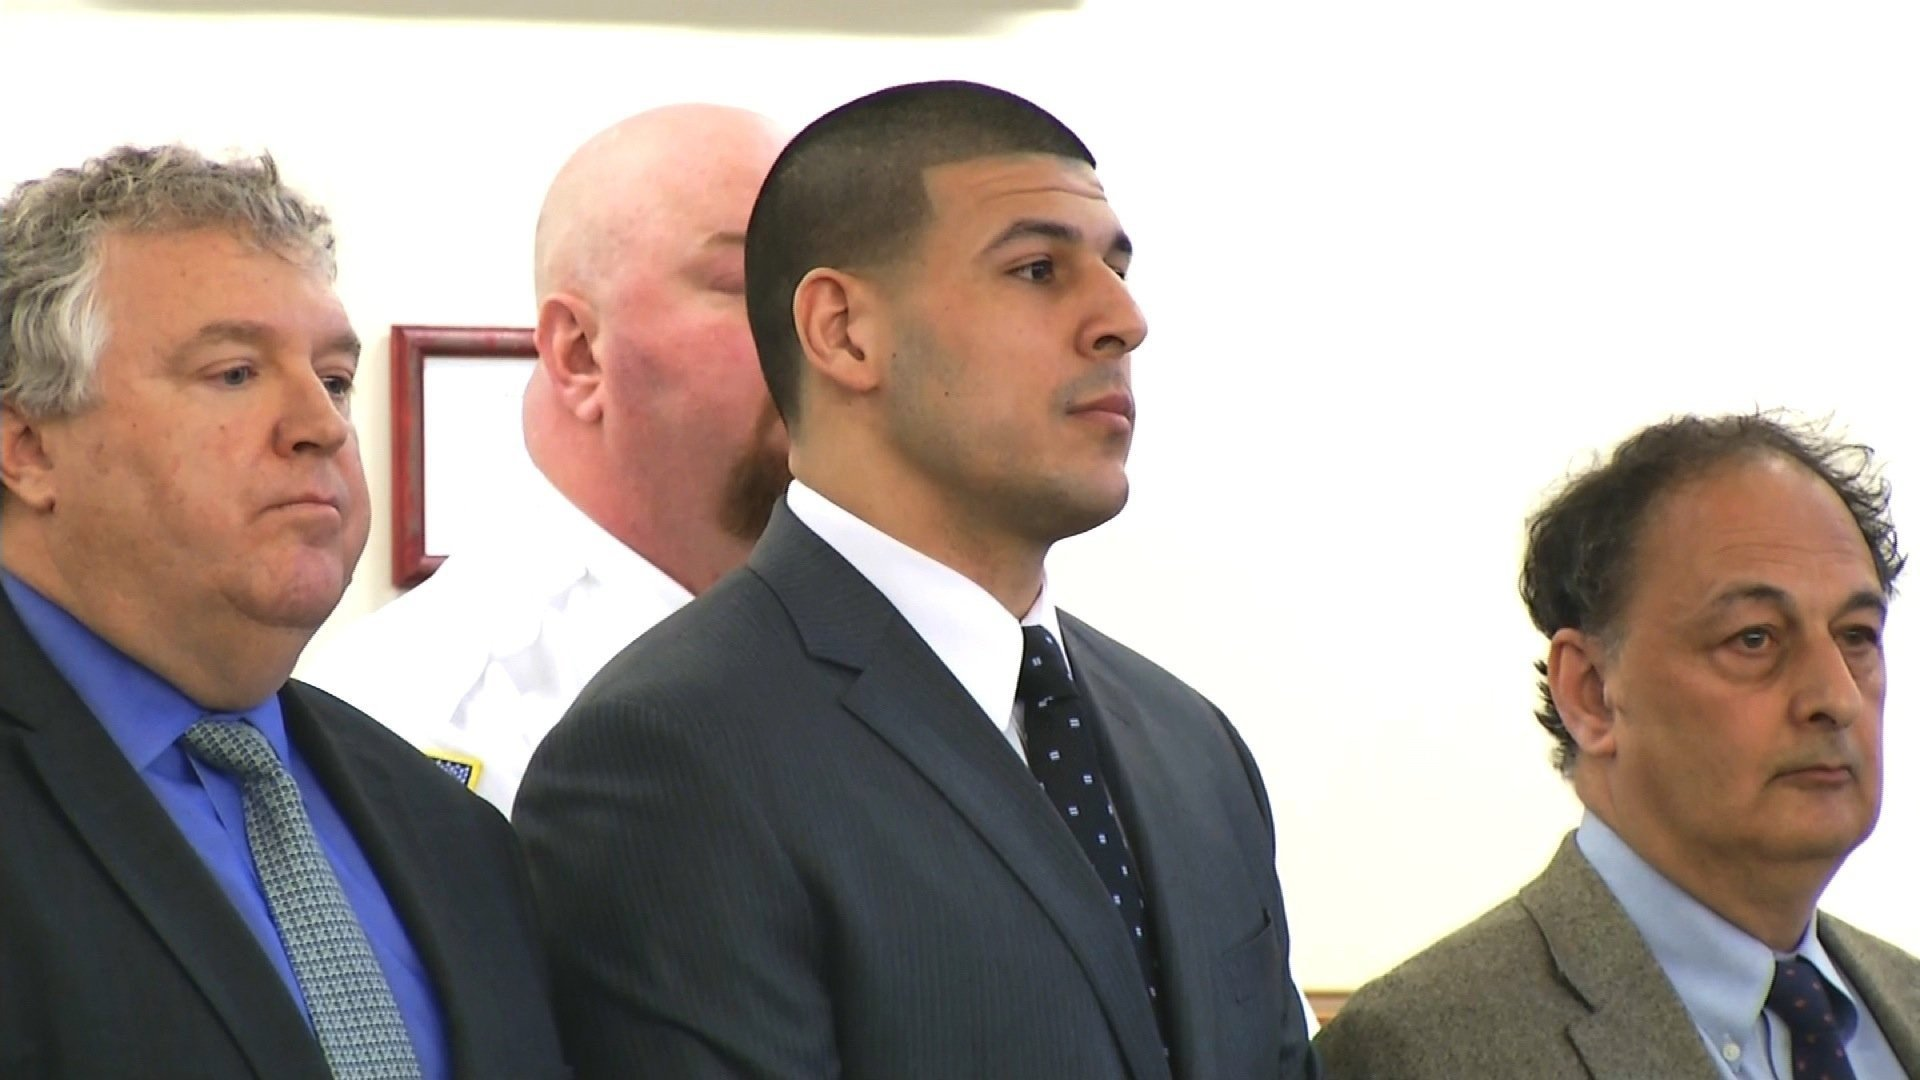 Former Gator Aaron Hernandez was elated about acquittal, not suicidal